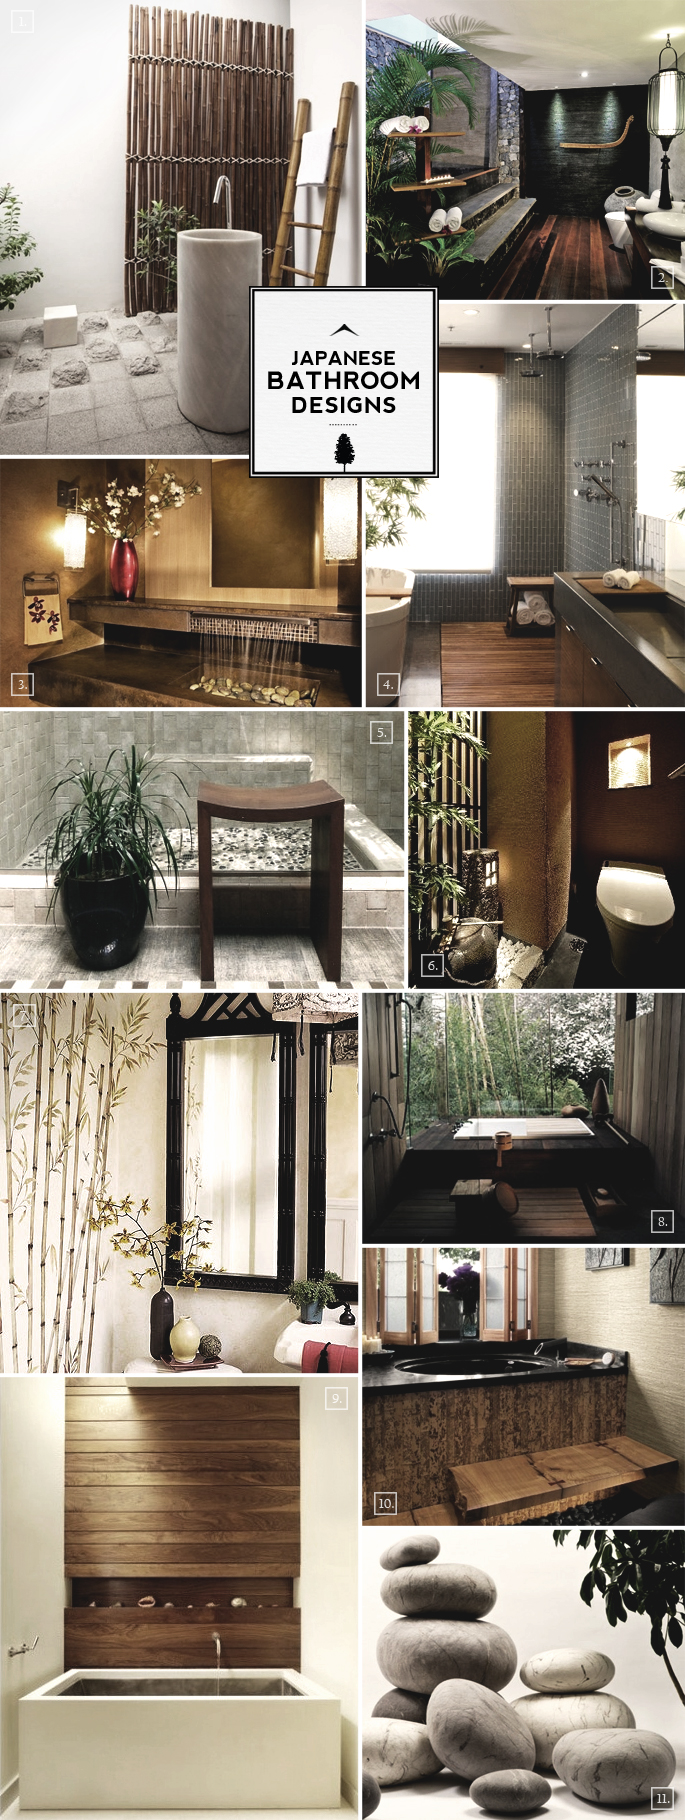 Zen style japanese bathroom design ideas home tree atlas for Bathroom design japanese style